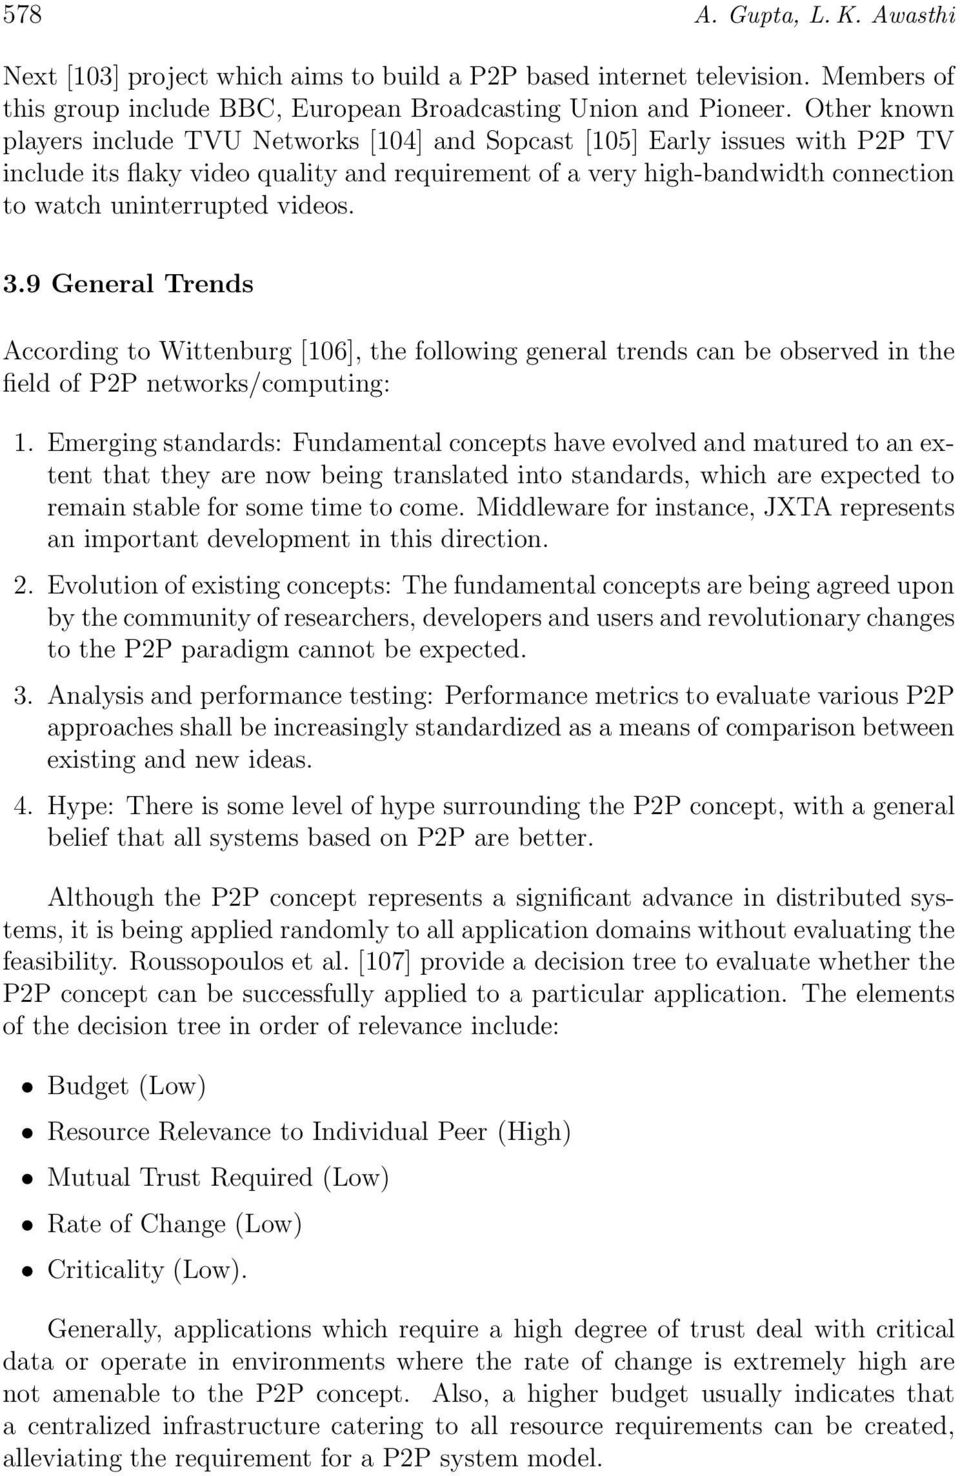 videos. 3.9 General Trends According to Wittenburg [106], the following general trends can be observed in the field of P2P networks/computing: 1.